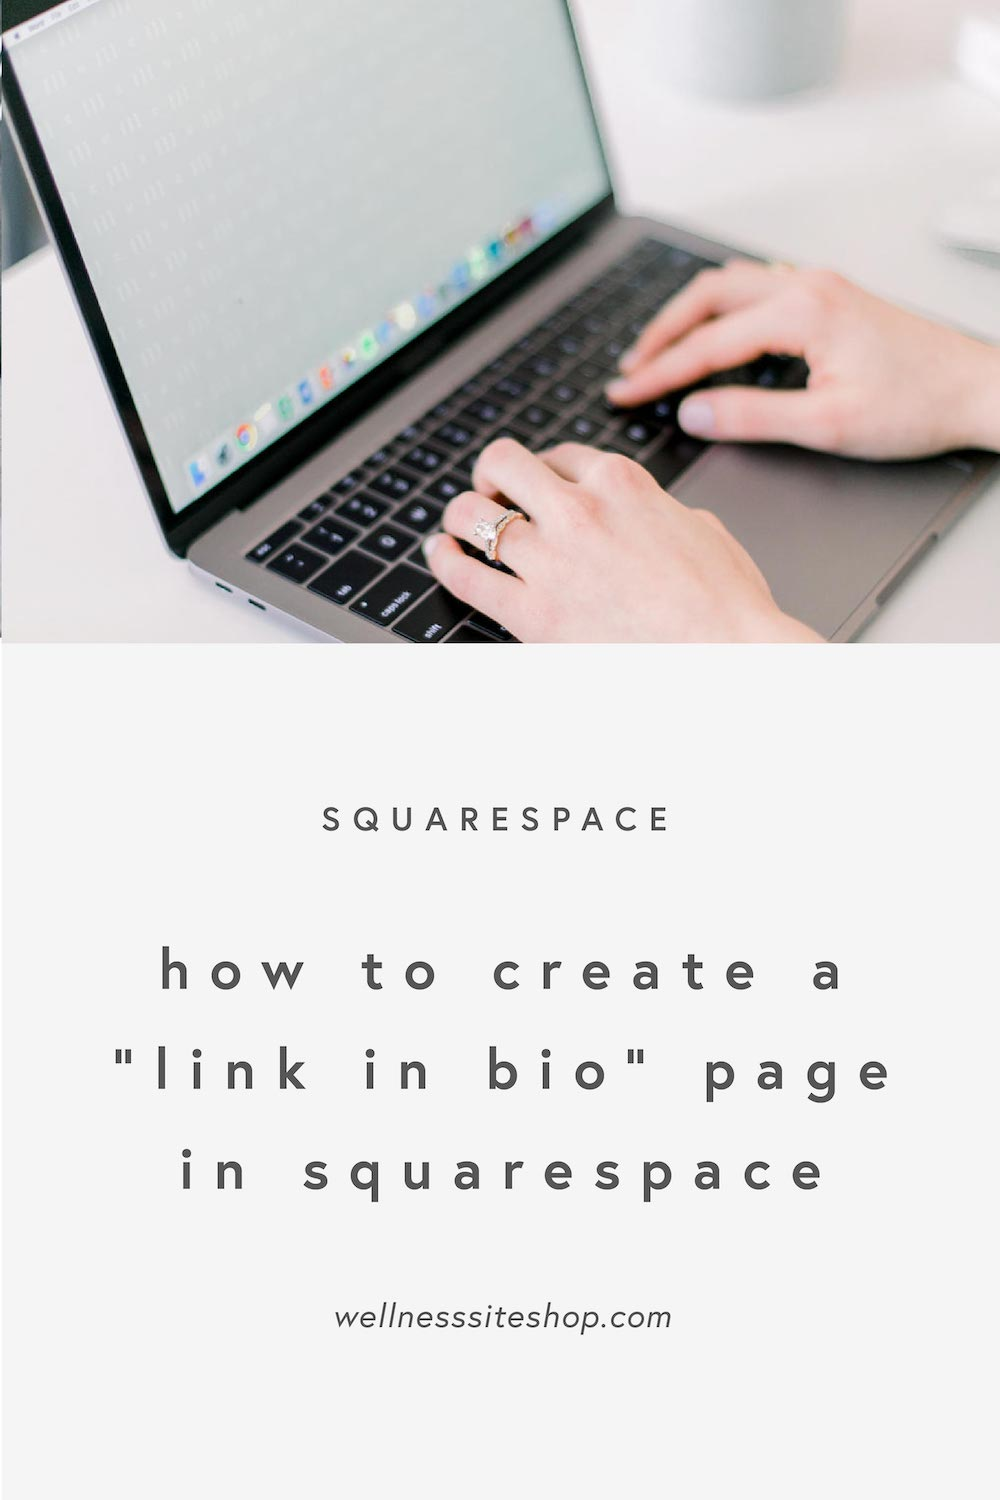 How to create a link in bio page in squarespace*.jpg